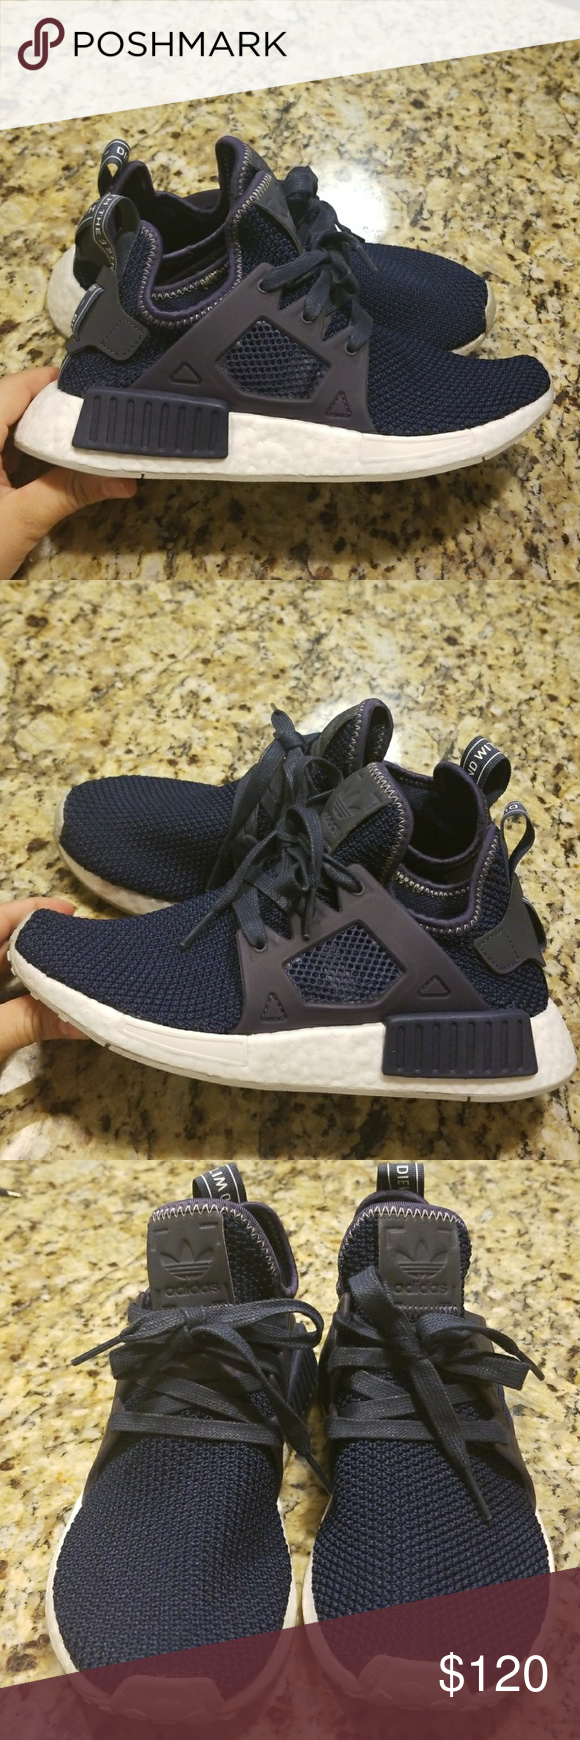 wholesale dealer 8a7ea 3fa7b WOMENS ADIDAS NMD XR1 #BY9819 Casual style and technical ...